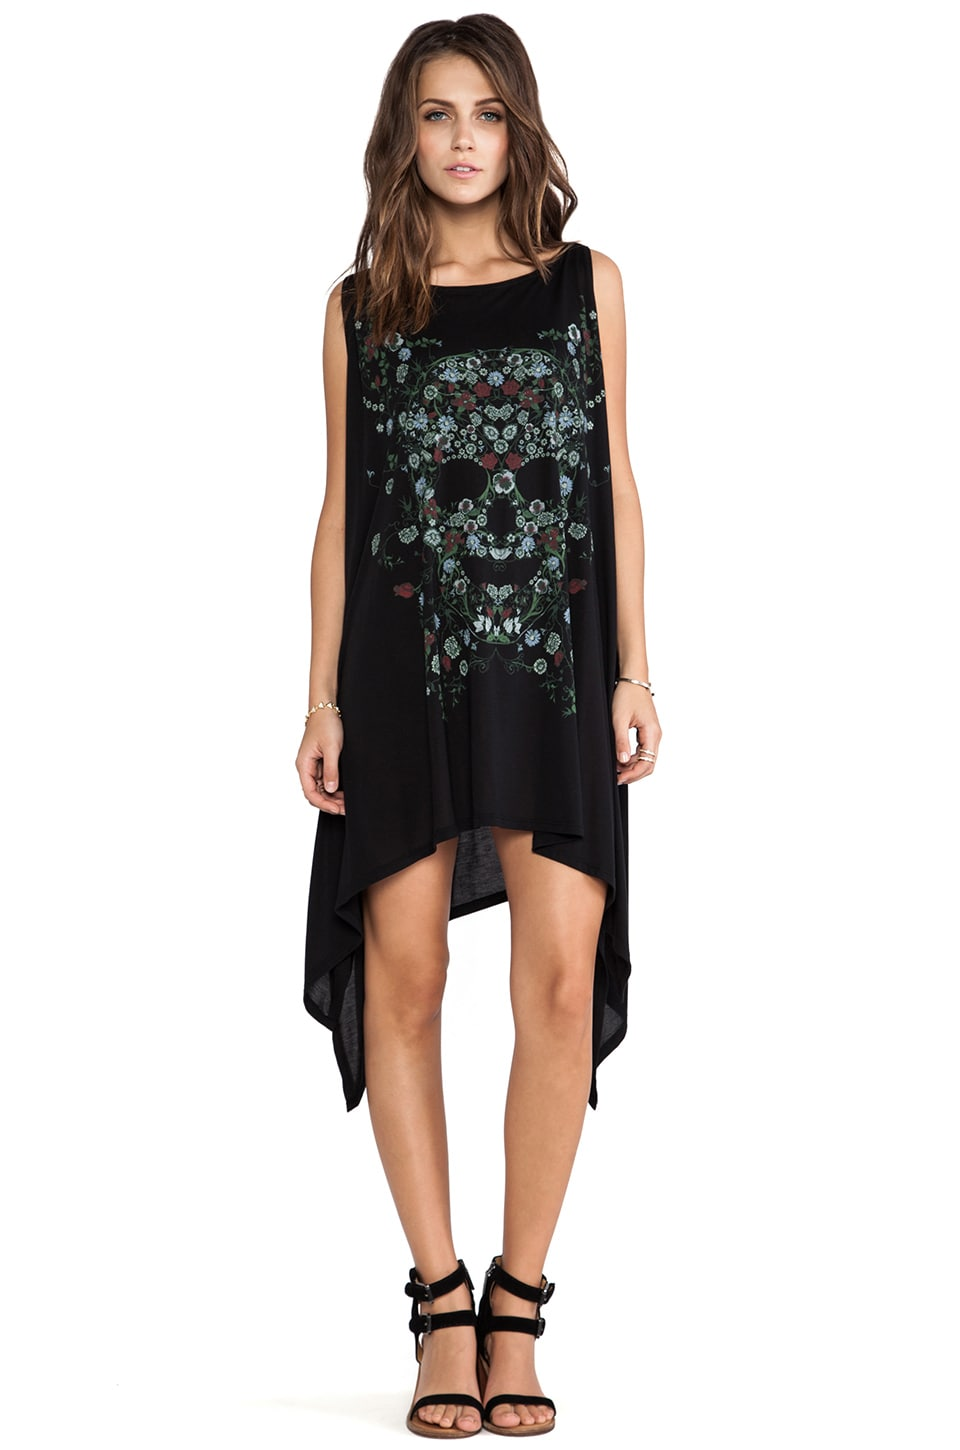 Lauren Moshi Ella Garden Skull Cape Dress in Black